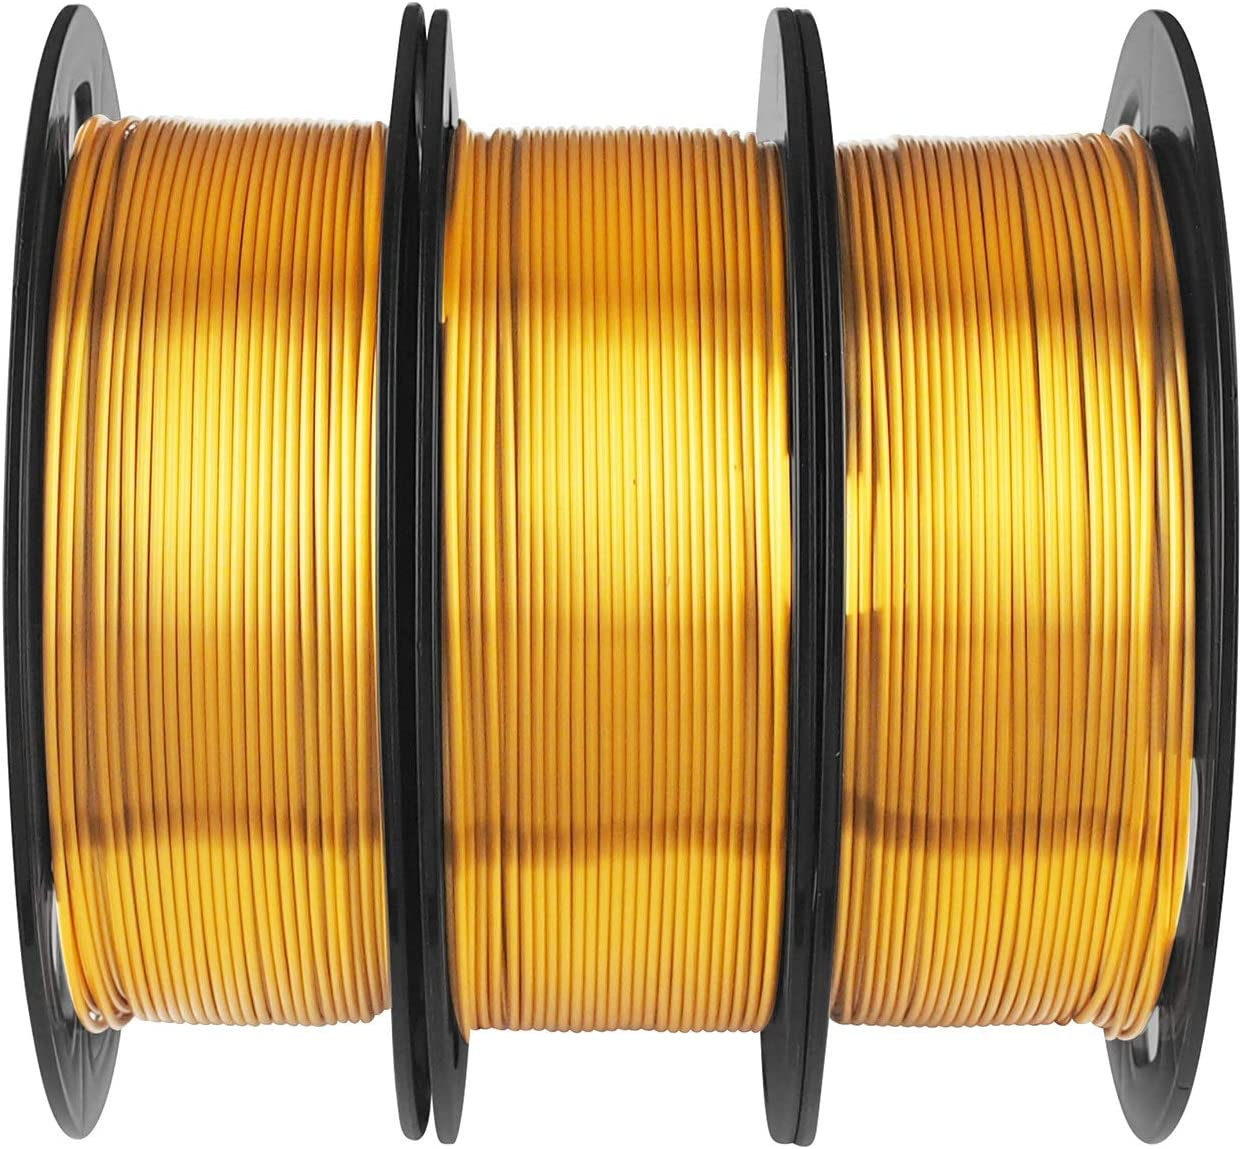 Shiny Silk Gold PLA Filament Bundle - 1.75mm 3D Printer Filament Each Spool 0.5kg, 3 Spools Pack, Total 1.5kgs 3D Printing Material with Extra Gift Stick Tool by MIKA3D